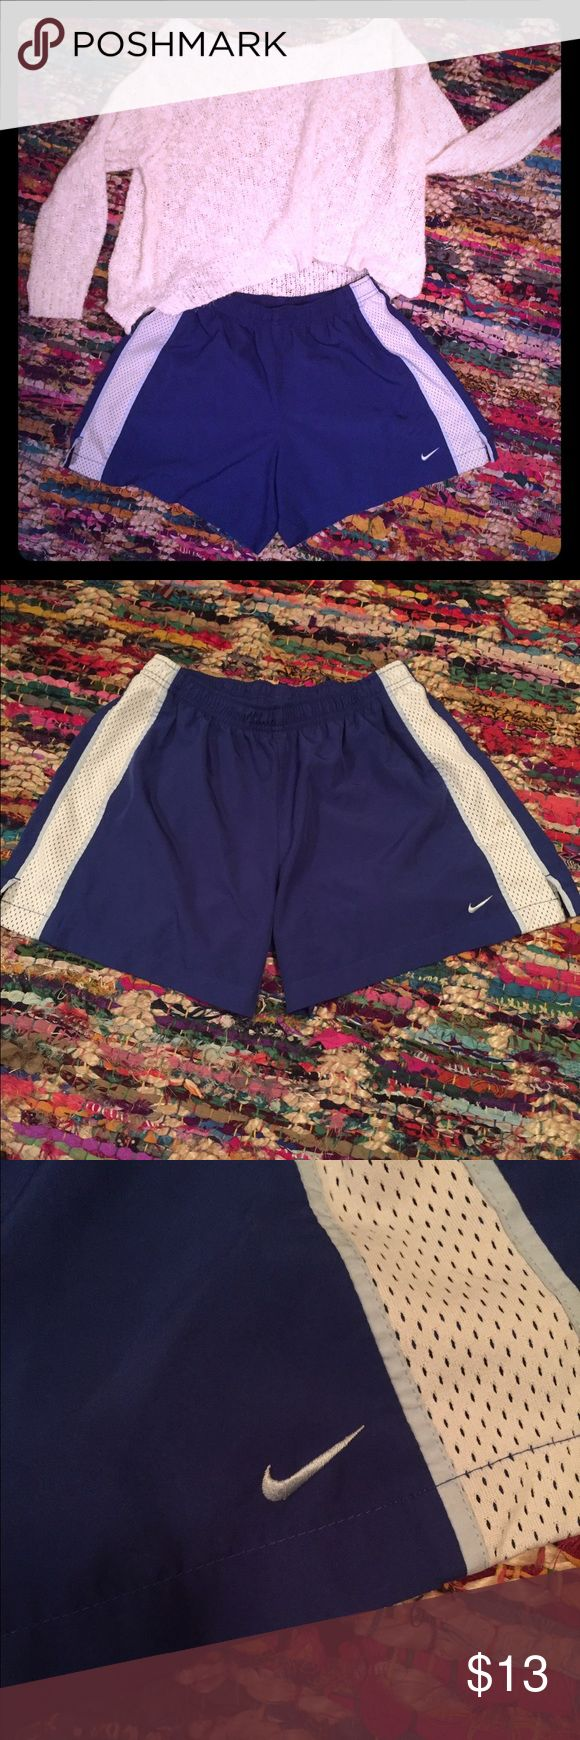 Royal blue Nike shorts Say helllloooooi to these puppies. Nike has done it again these shorts are so light and airy, cozy and comfy you just cant take them off. They are perfect for a jog or just a stroll around the house. No wear or tear like new! Go ahead add it to a bundle! Nike Shorts